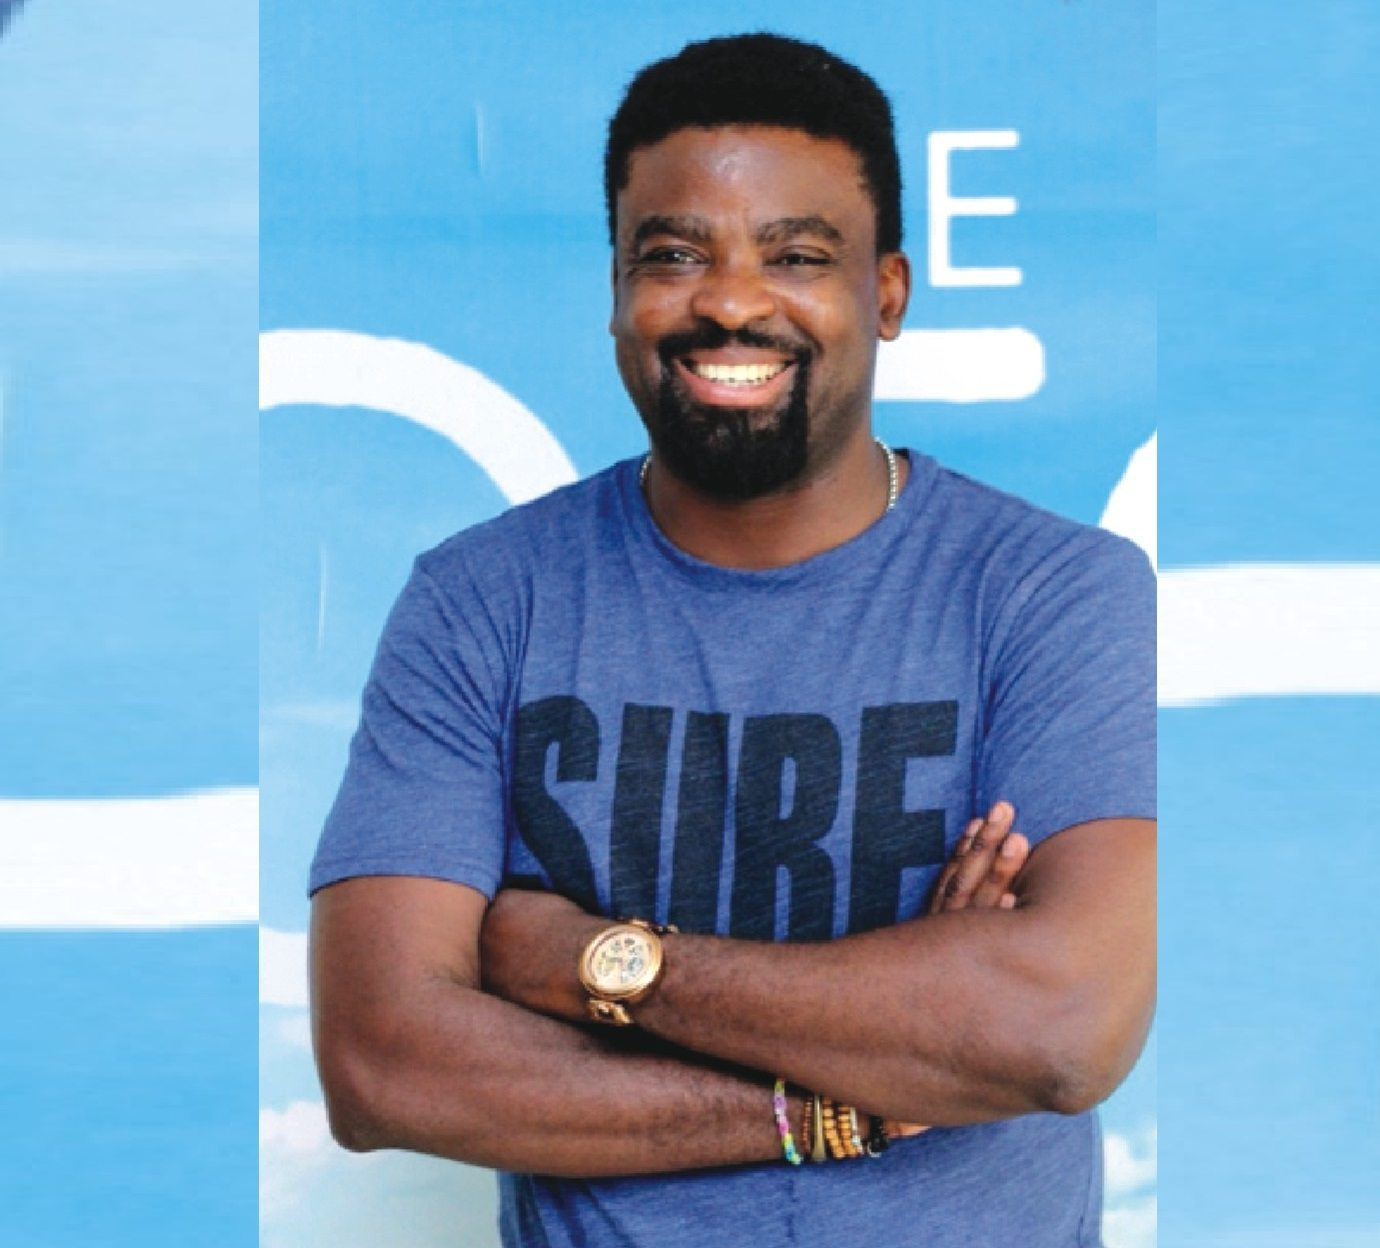 famous actor kunle afolayan explains why he enrolled his son as a mechanic apprentice - Netflix Acquires Kunle Afolayan's New Movie, 'Mokalik'